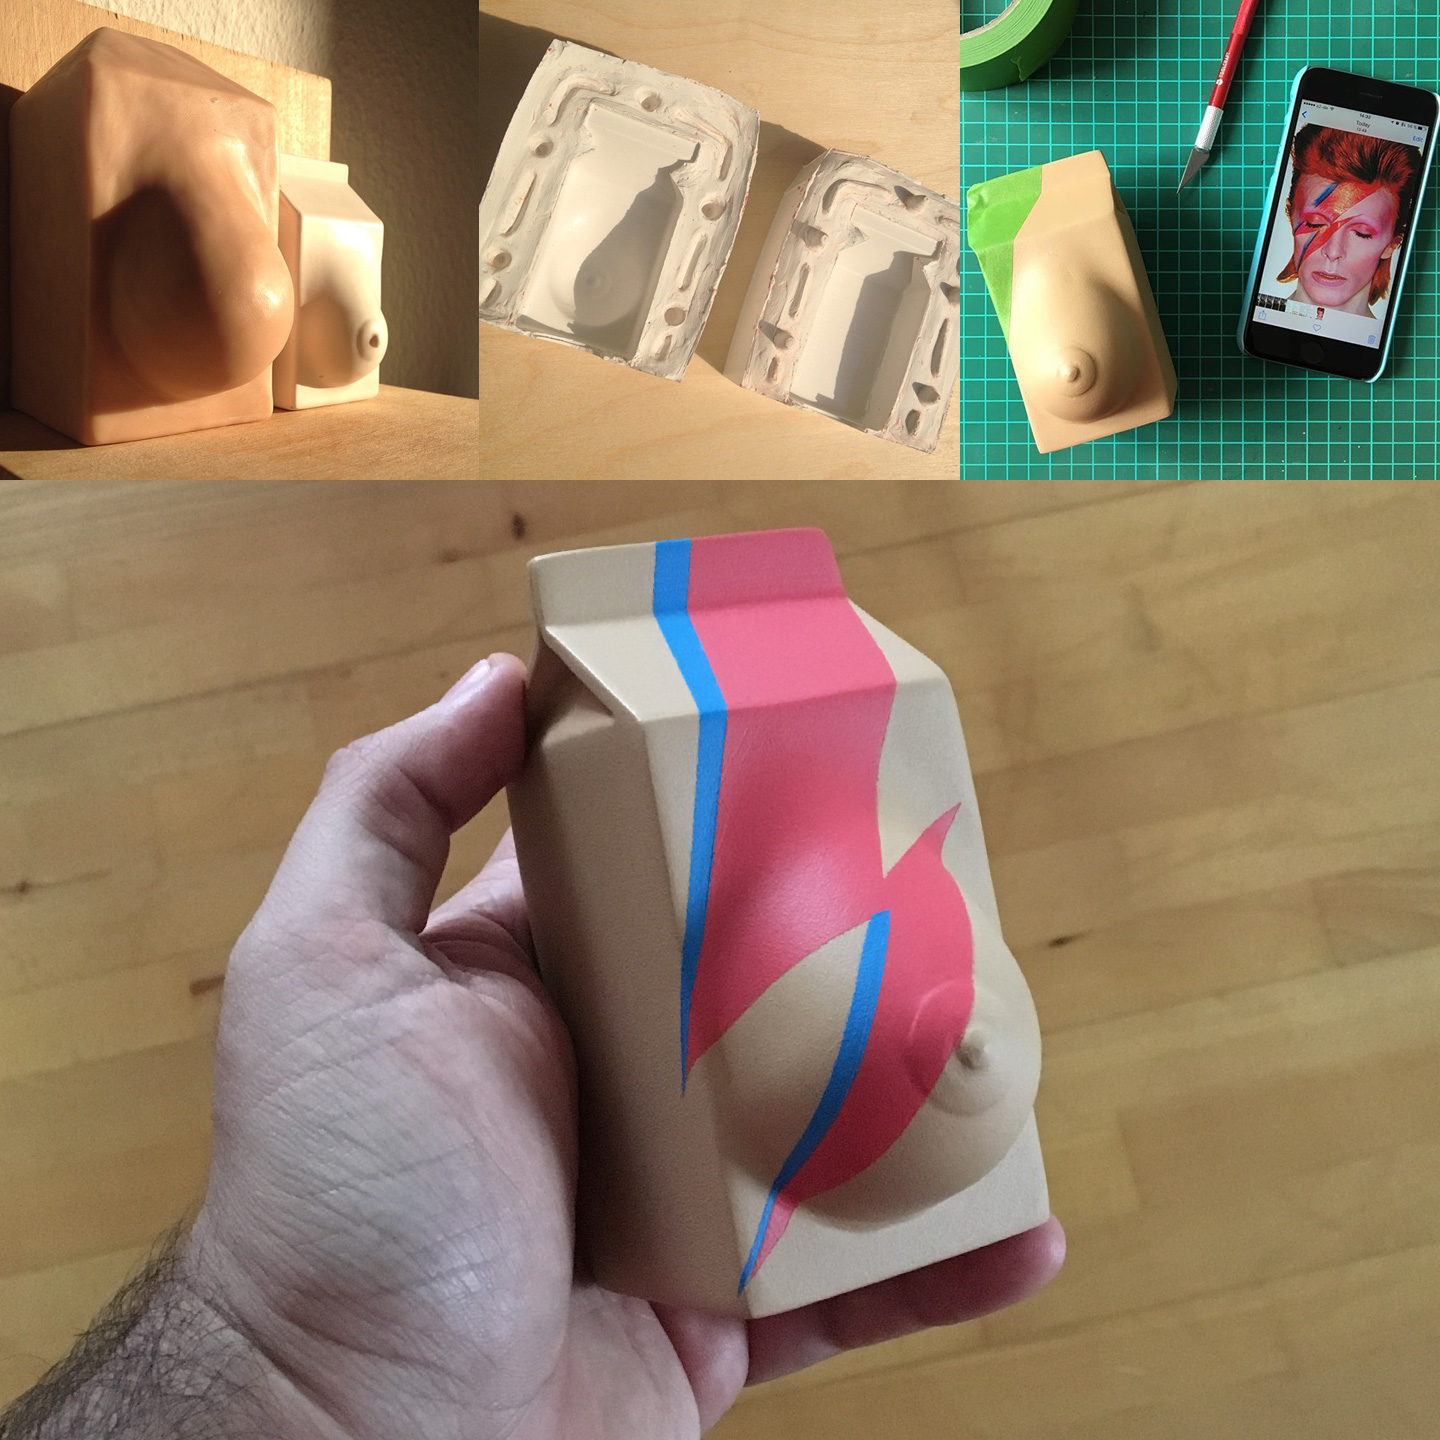 art_illustration_andre_levy_zhion_mama_breast_milk_carton_sculpture_makingof_bowie_aladdin_sane_resin.jpg